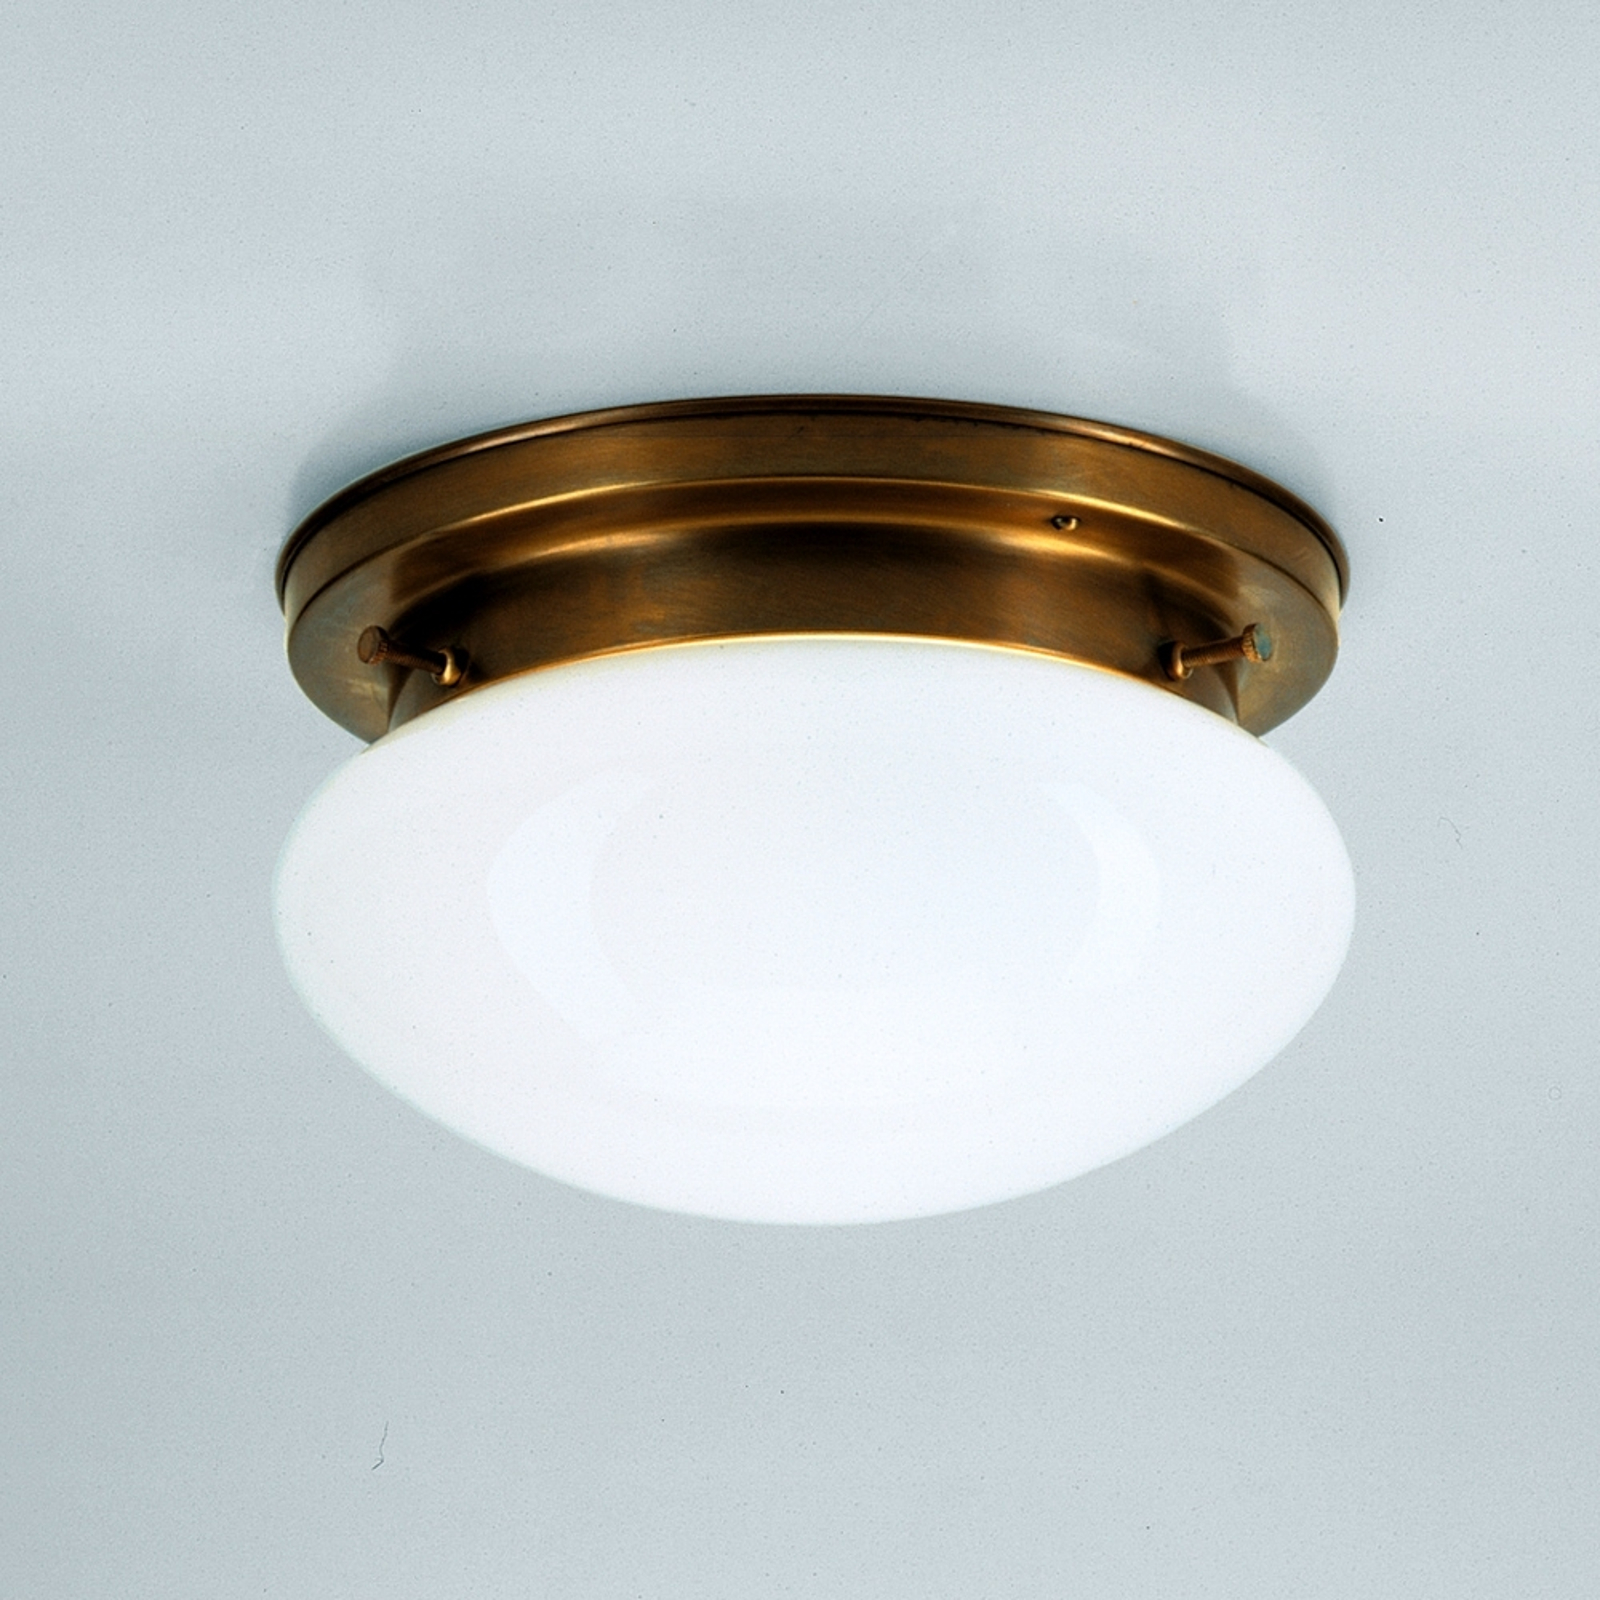 HARRY opal ceiling light with brass_1542025_1